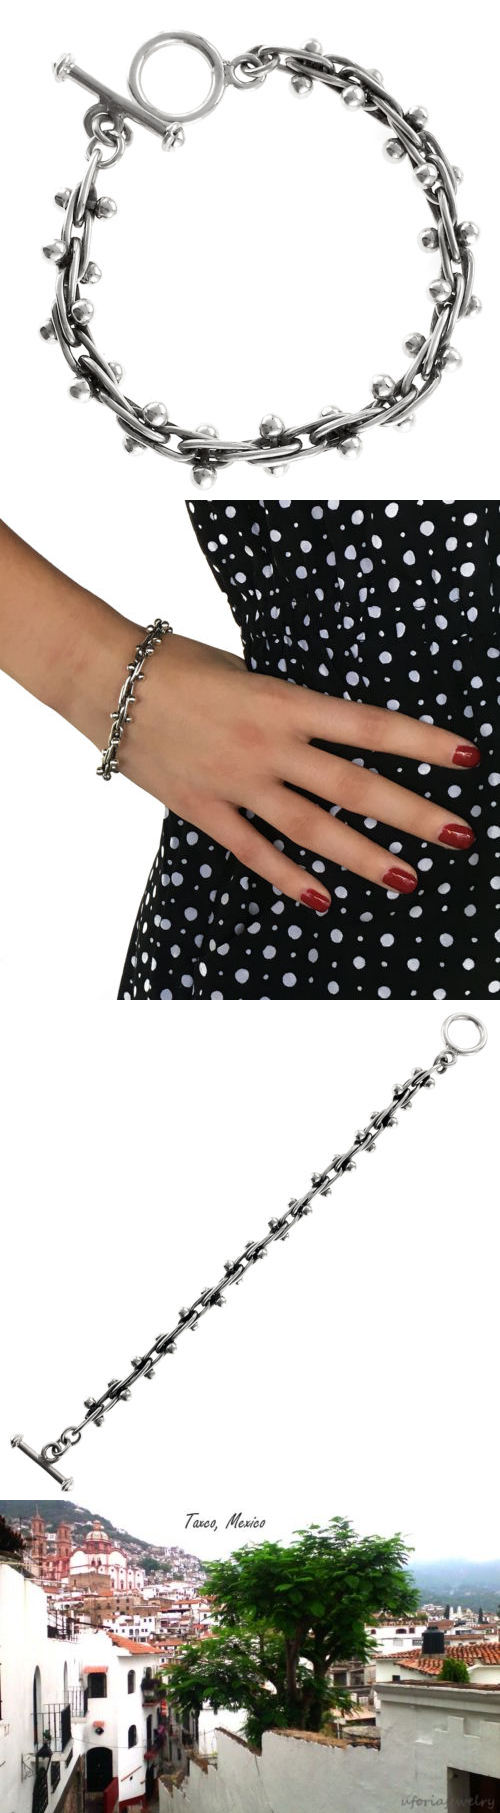 Bracelets 98489: 925 Vintage Design Berries Bracelet | Taxco Mexico Sterling Silver Jewelry BUY IT NOW ONLY: $89.95